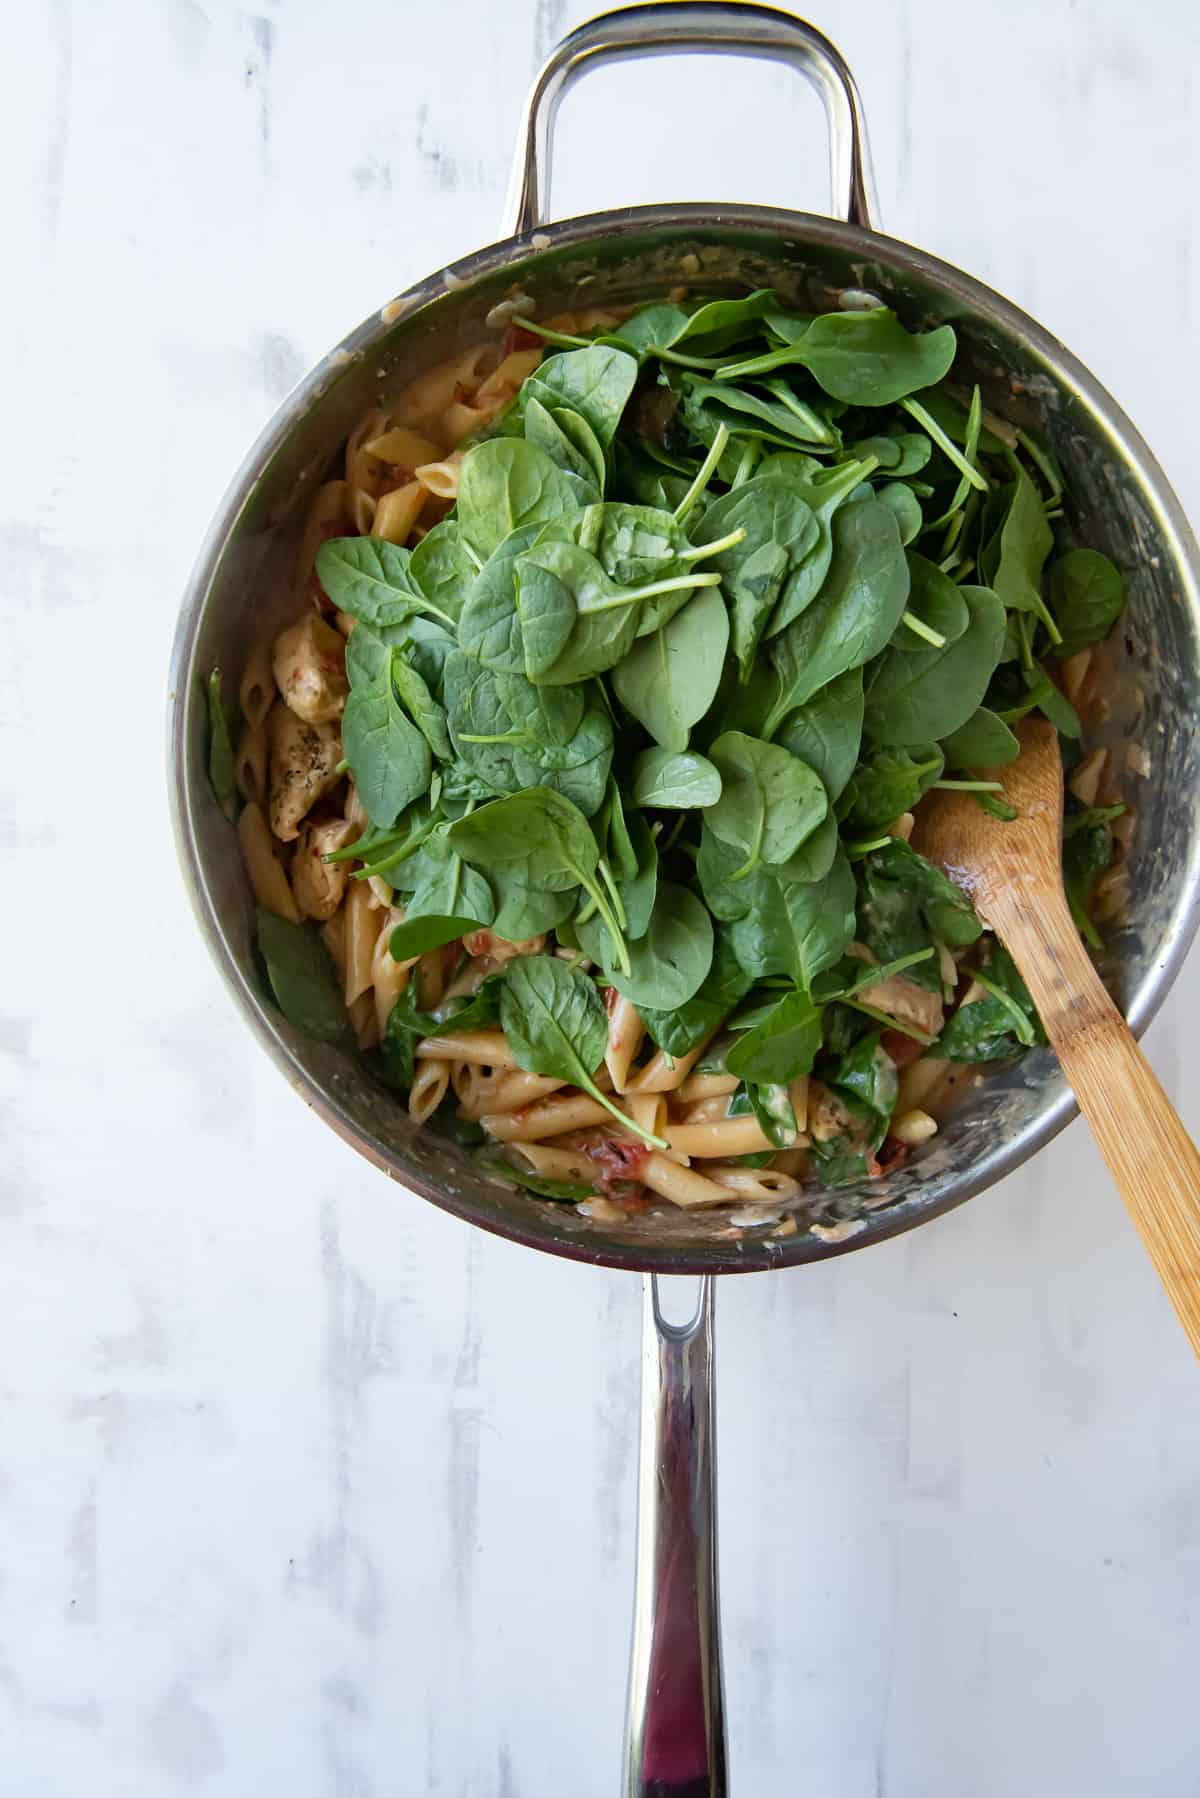 Baby spinach piled on top of pasta in a skillet.